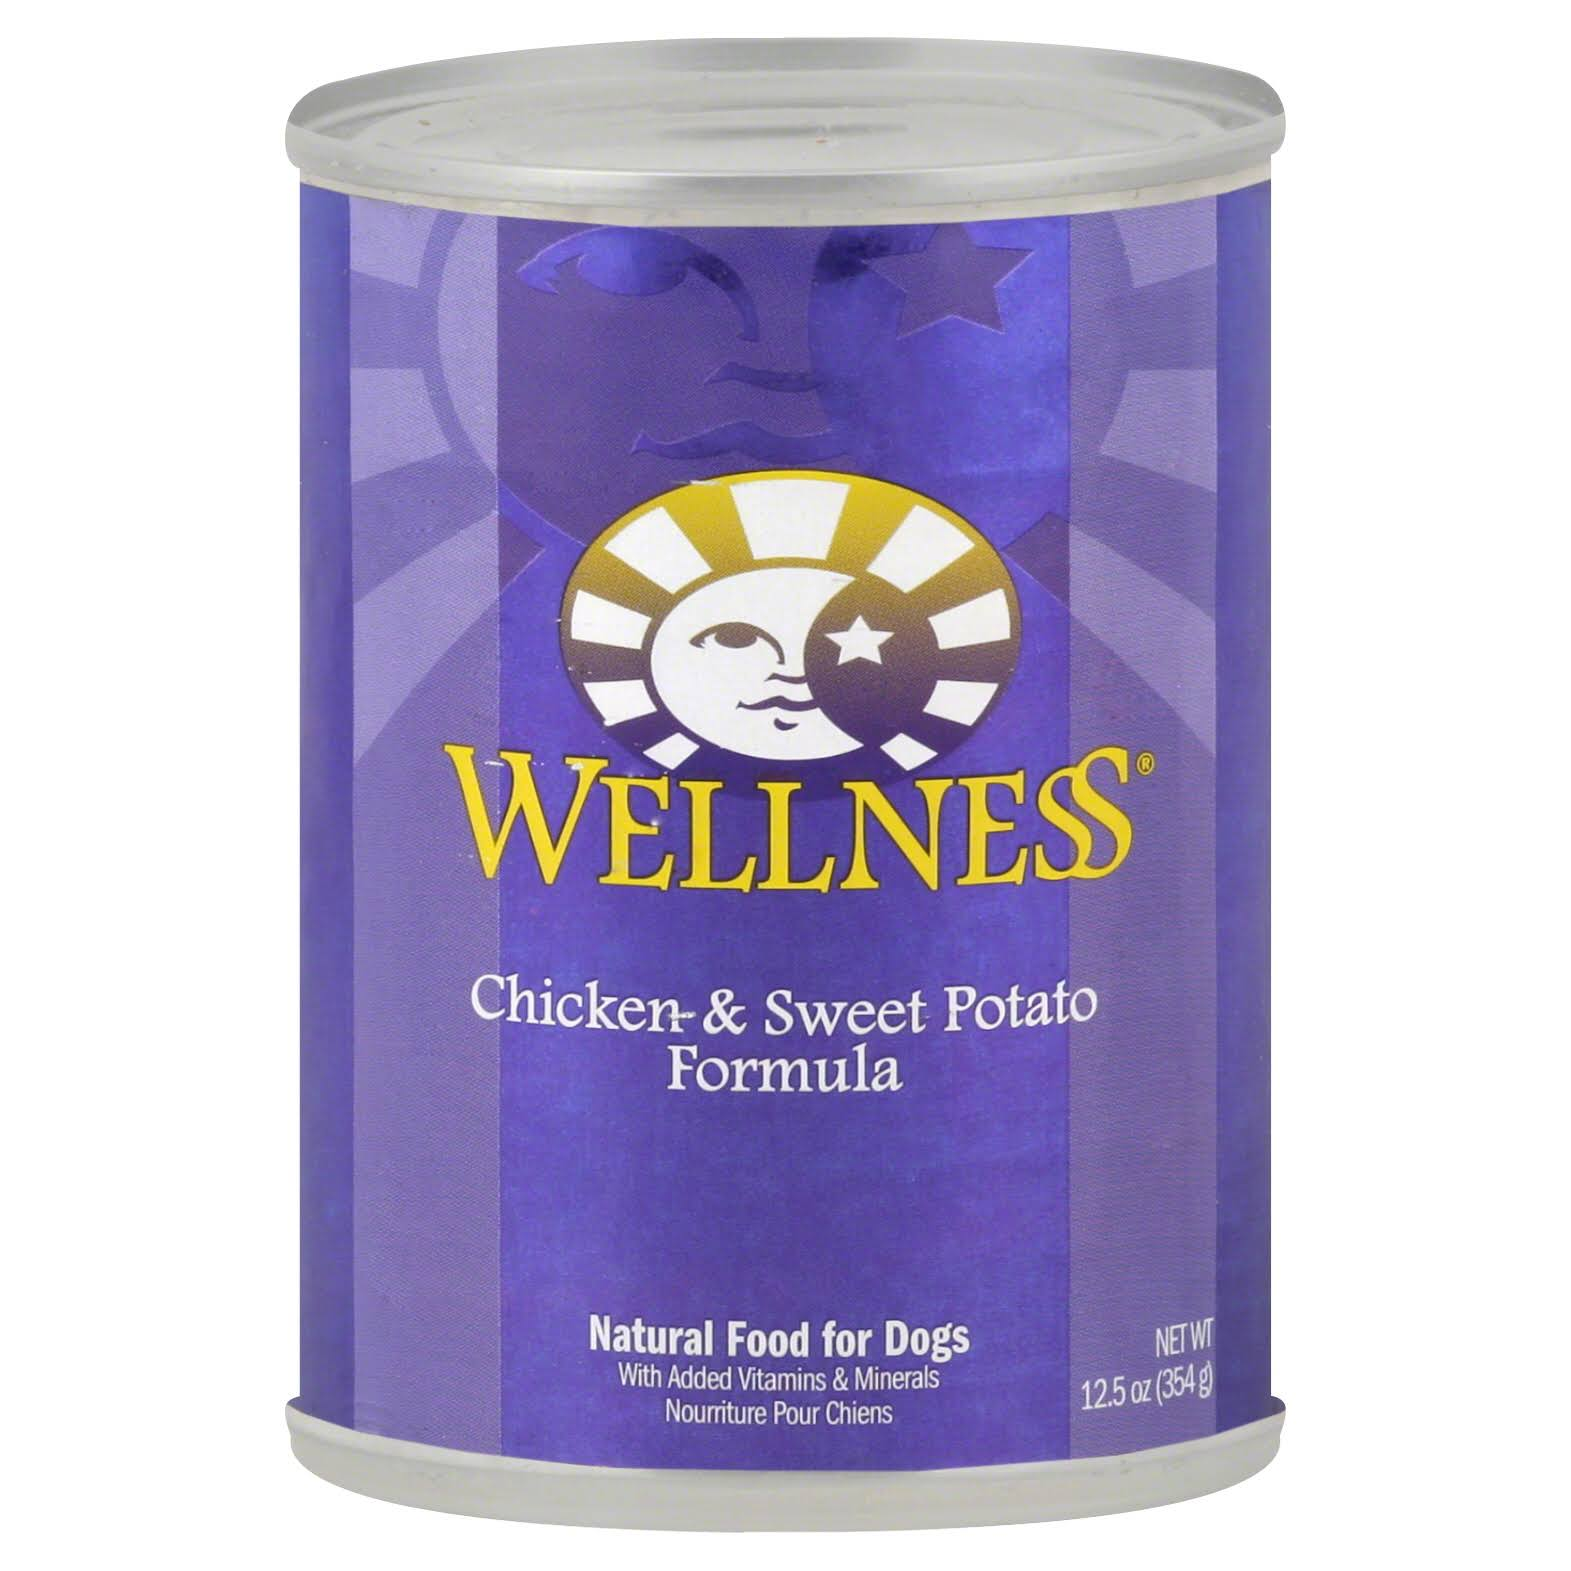 Wellness Canned Dog Food - Chicken and Sweet Potato, 12.5oz